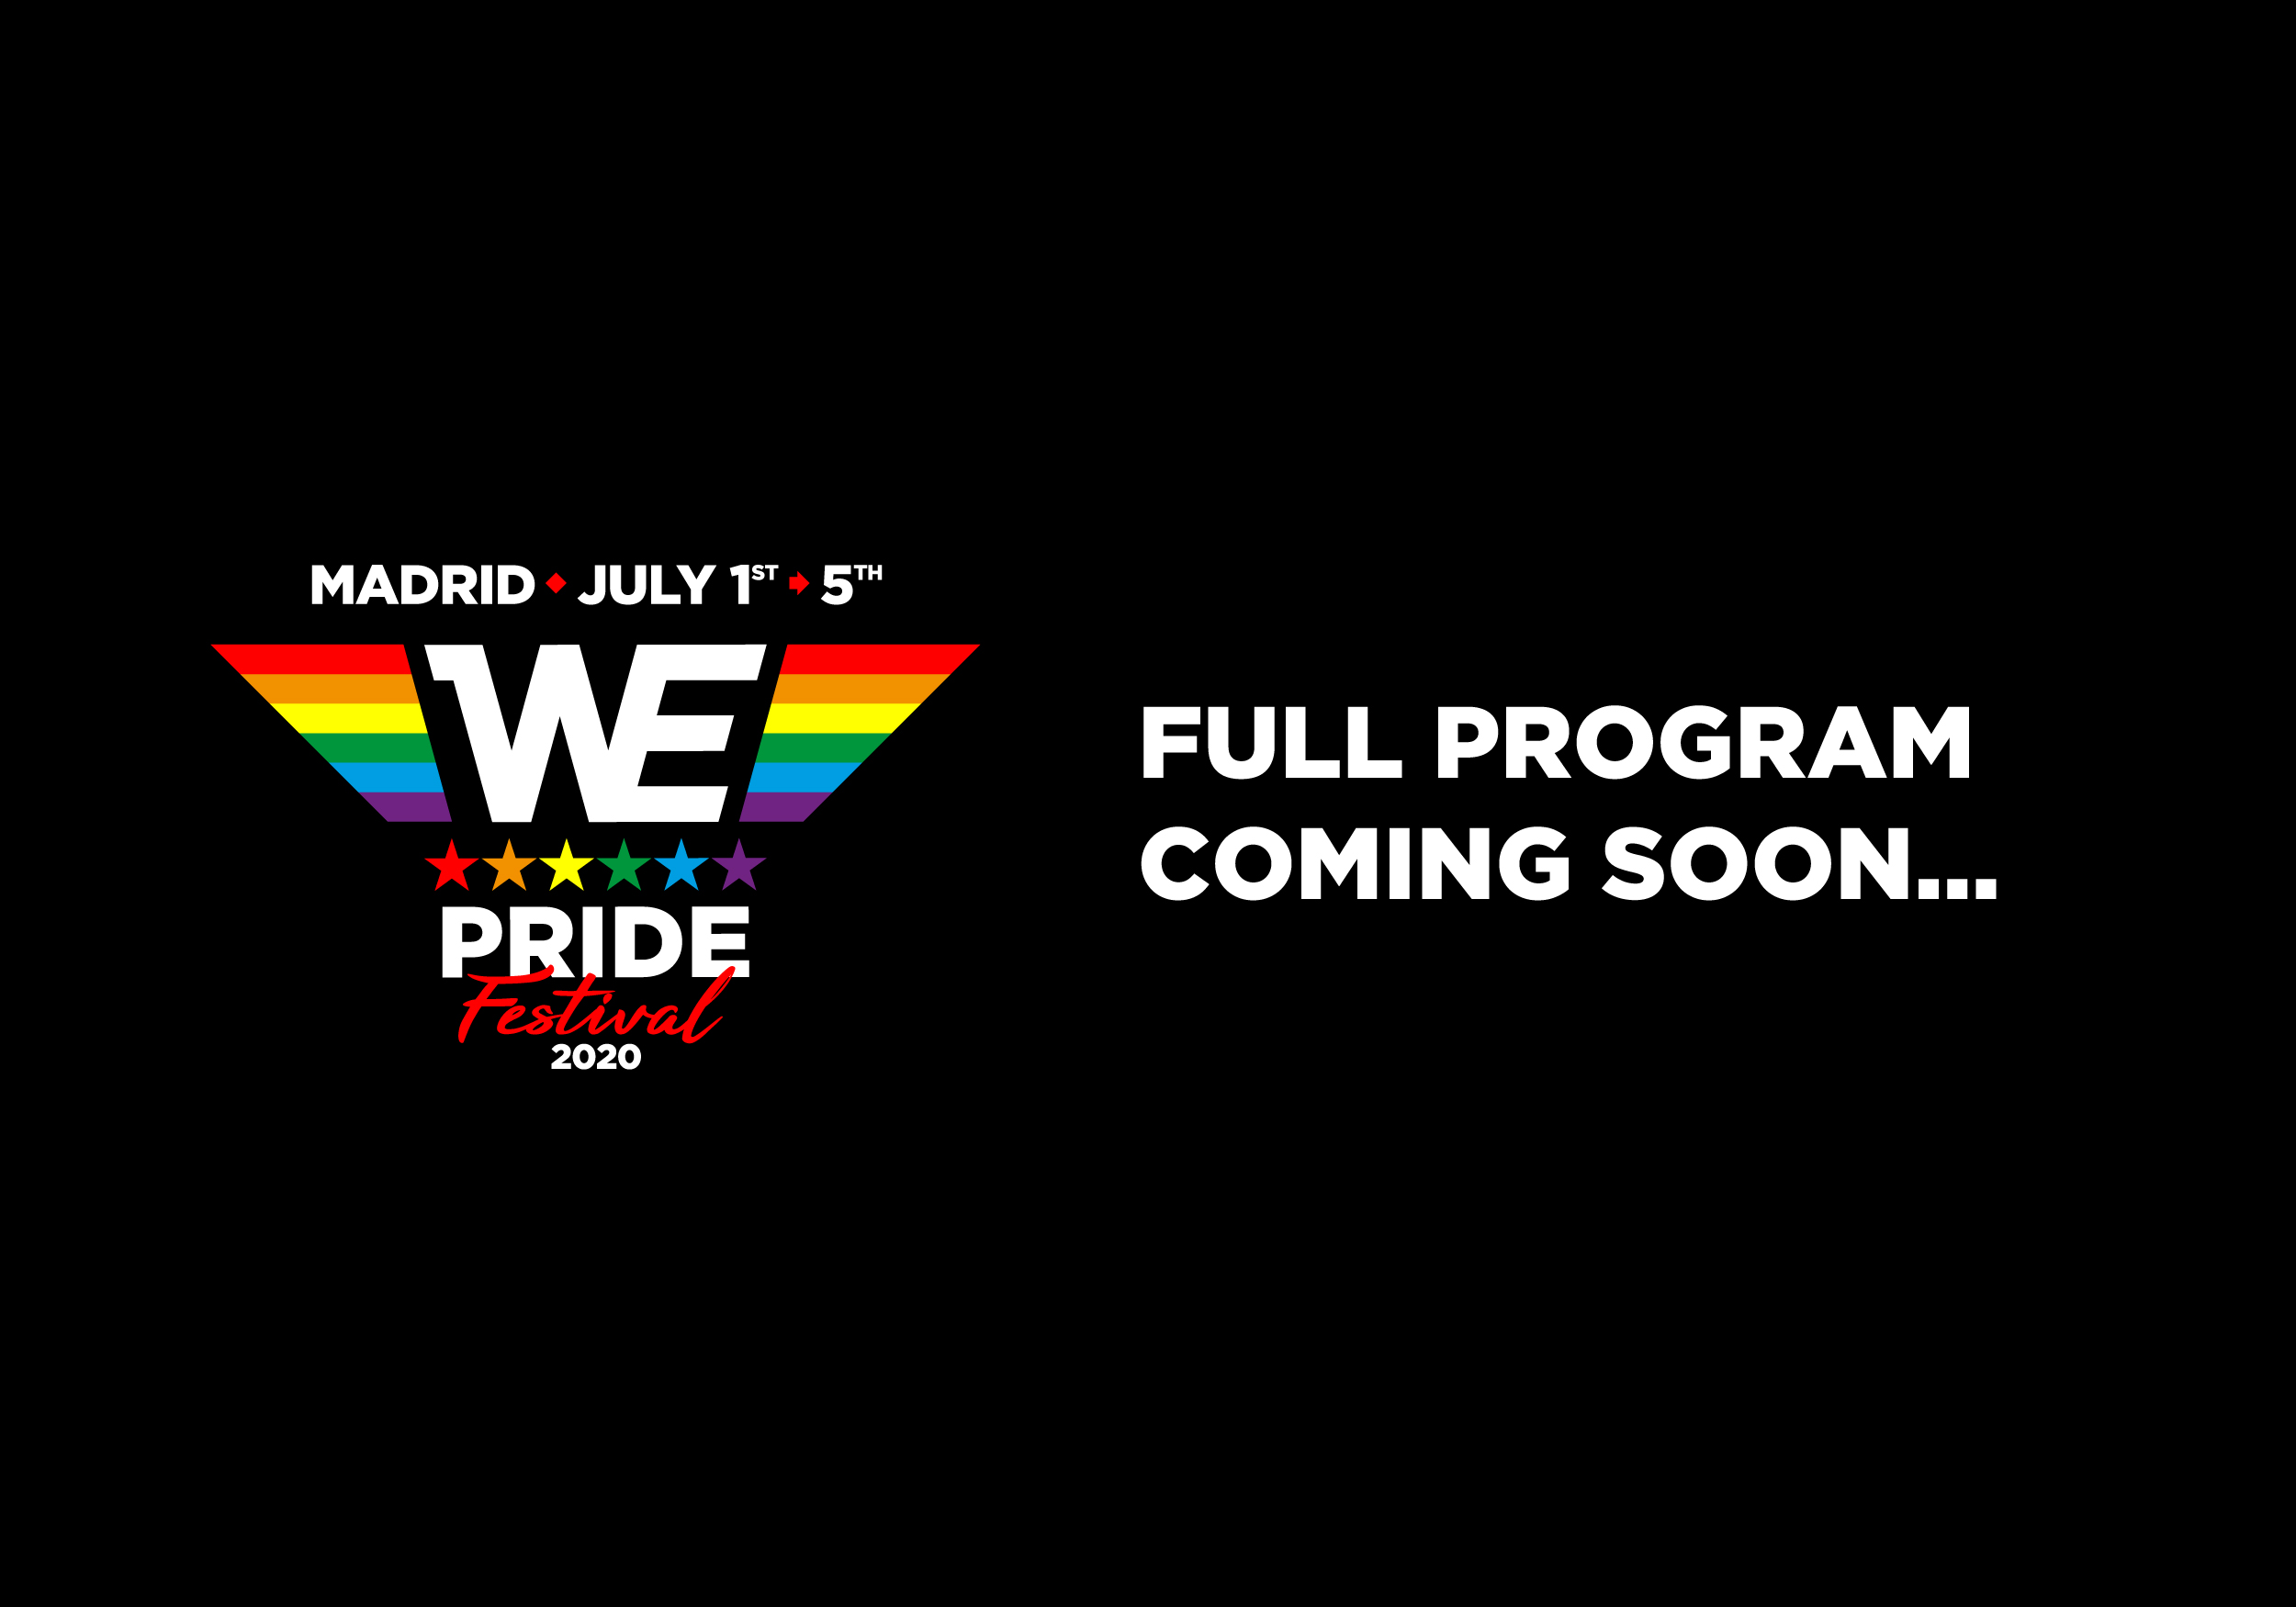 WE-PrideFestival2020-WEB-FULLPROGRAM